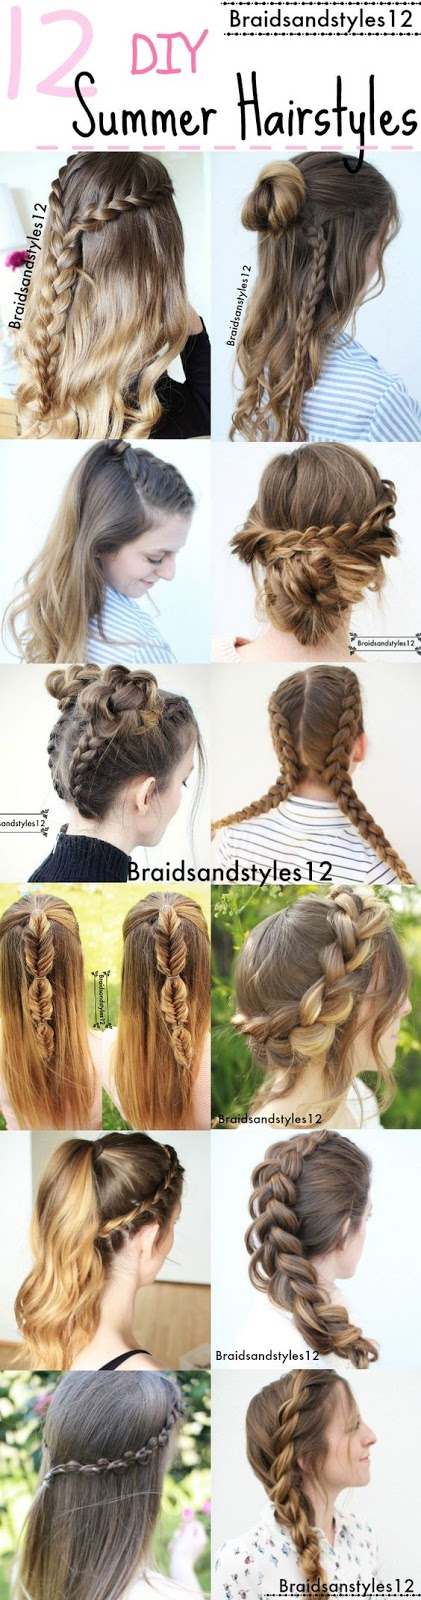 12 braid hairstyle ideas for this summer